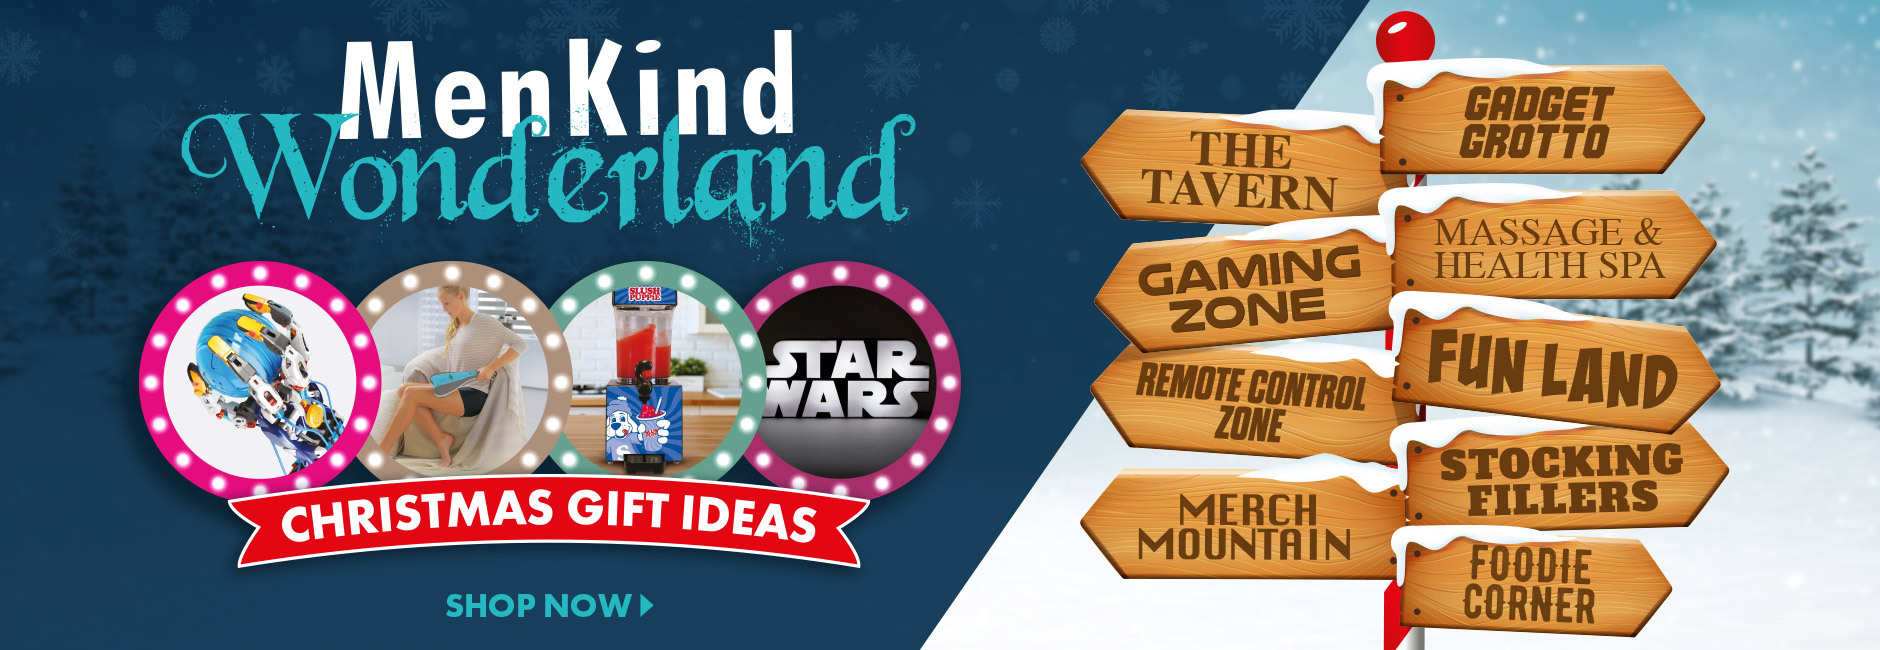 Welcome to Menkind's Christmas Wonderland, where you'll find all kinds of gift ideas for all kinds of people!